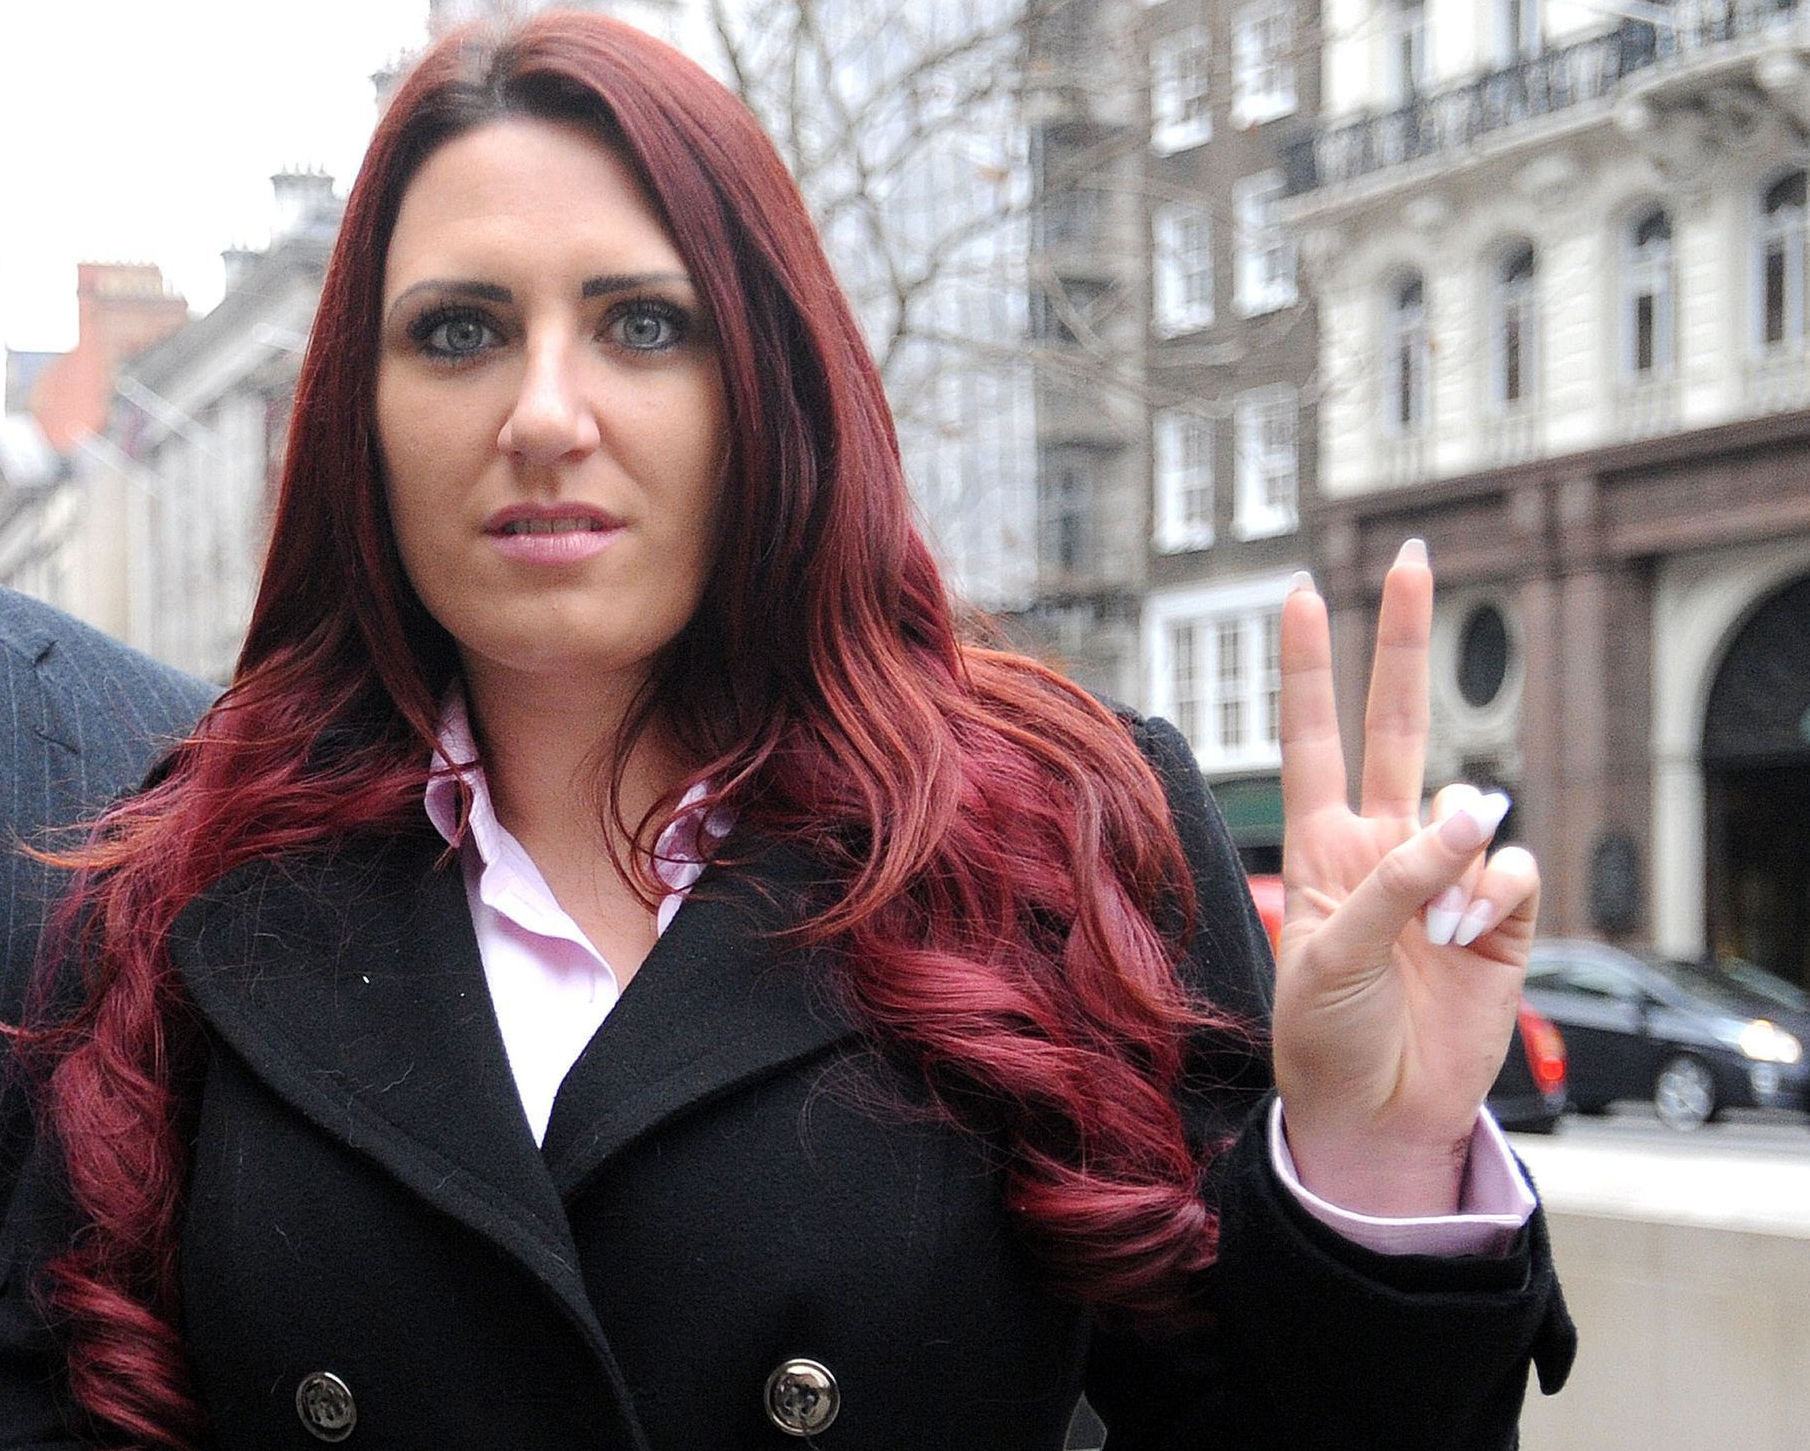 The 'activism' of Britain First's Jayda Fransen mainly consists of patrolling high streets intimidating women in hijabs